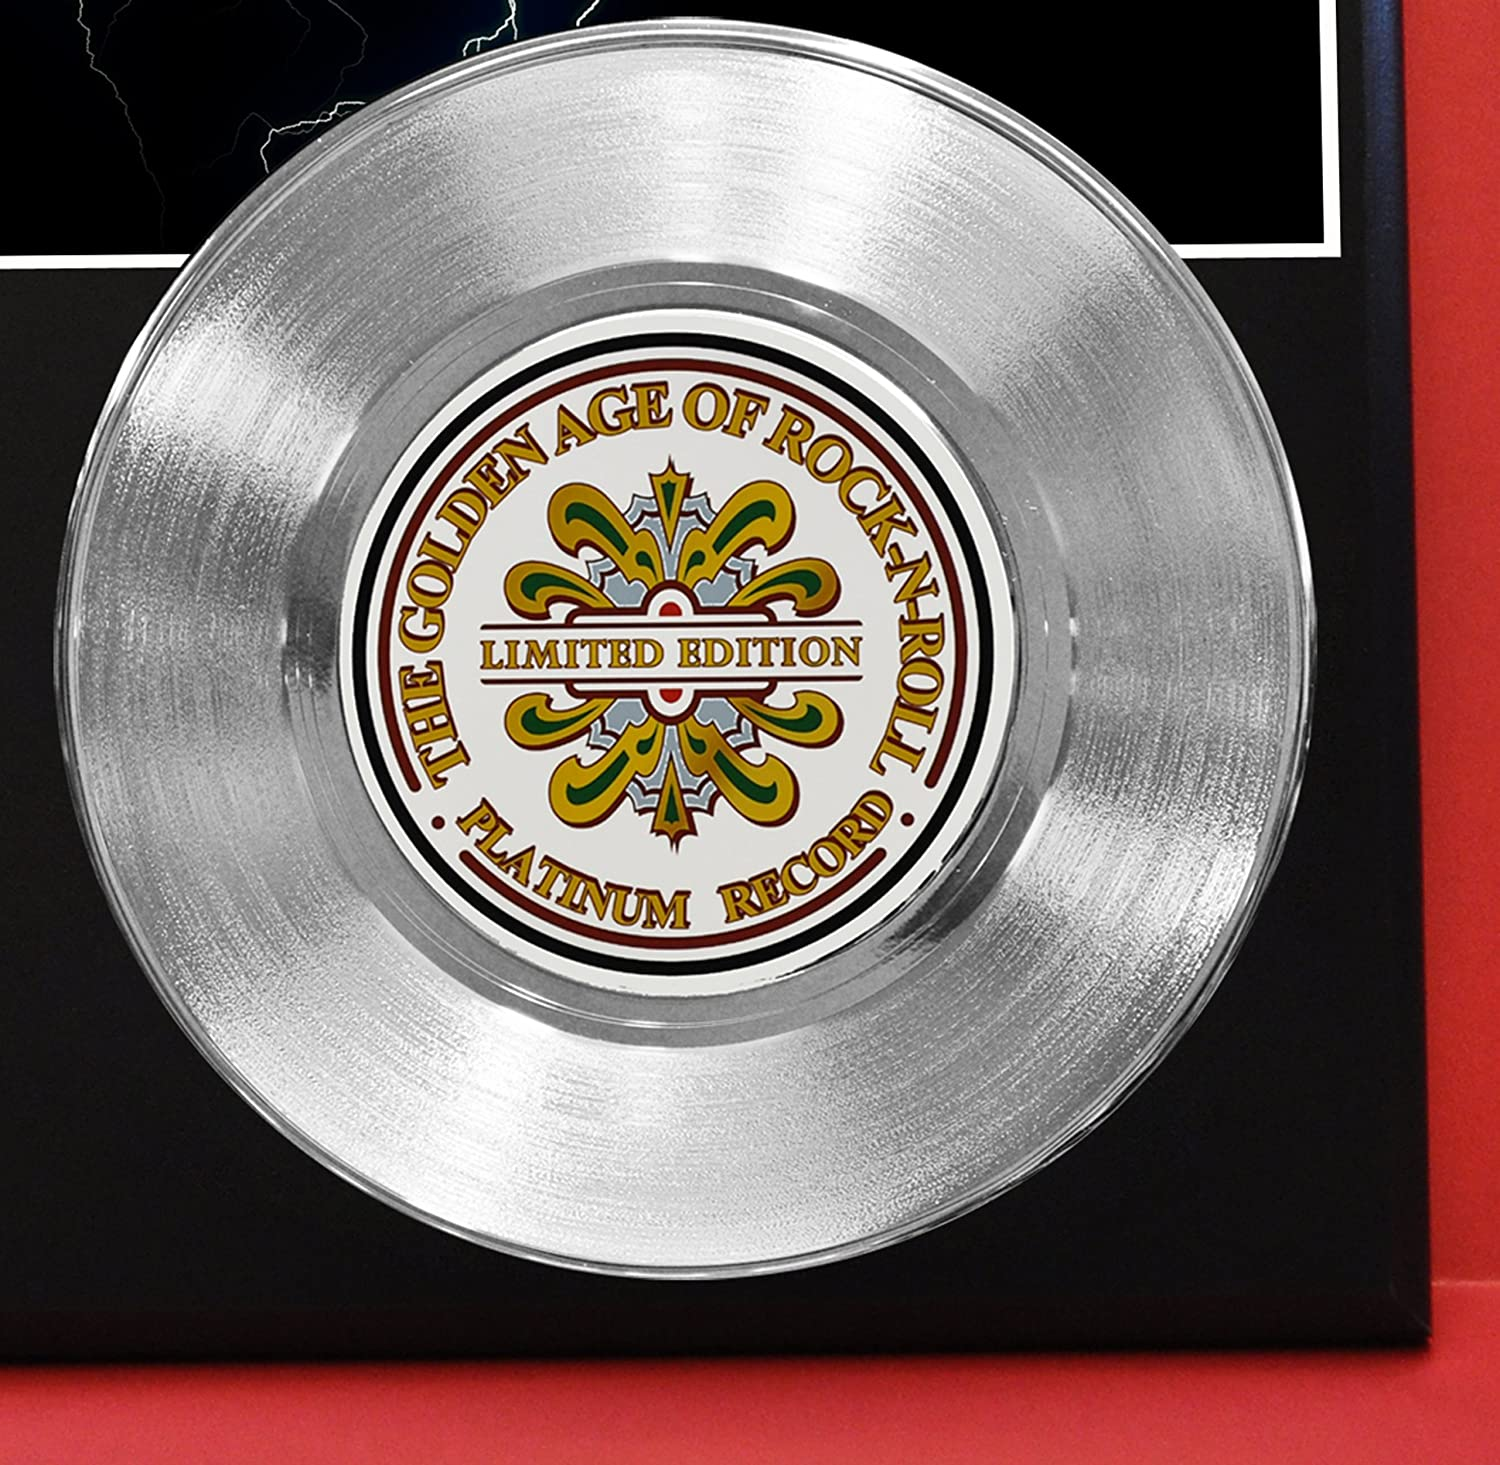 Ac/Dc Platinum Record LTD Edition Award Quality Display стоимость